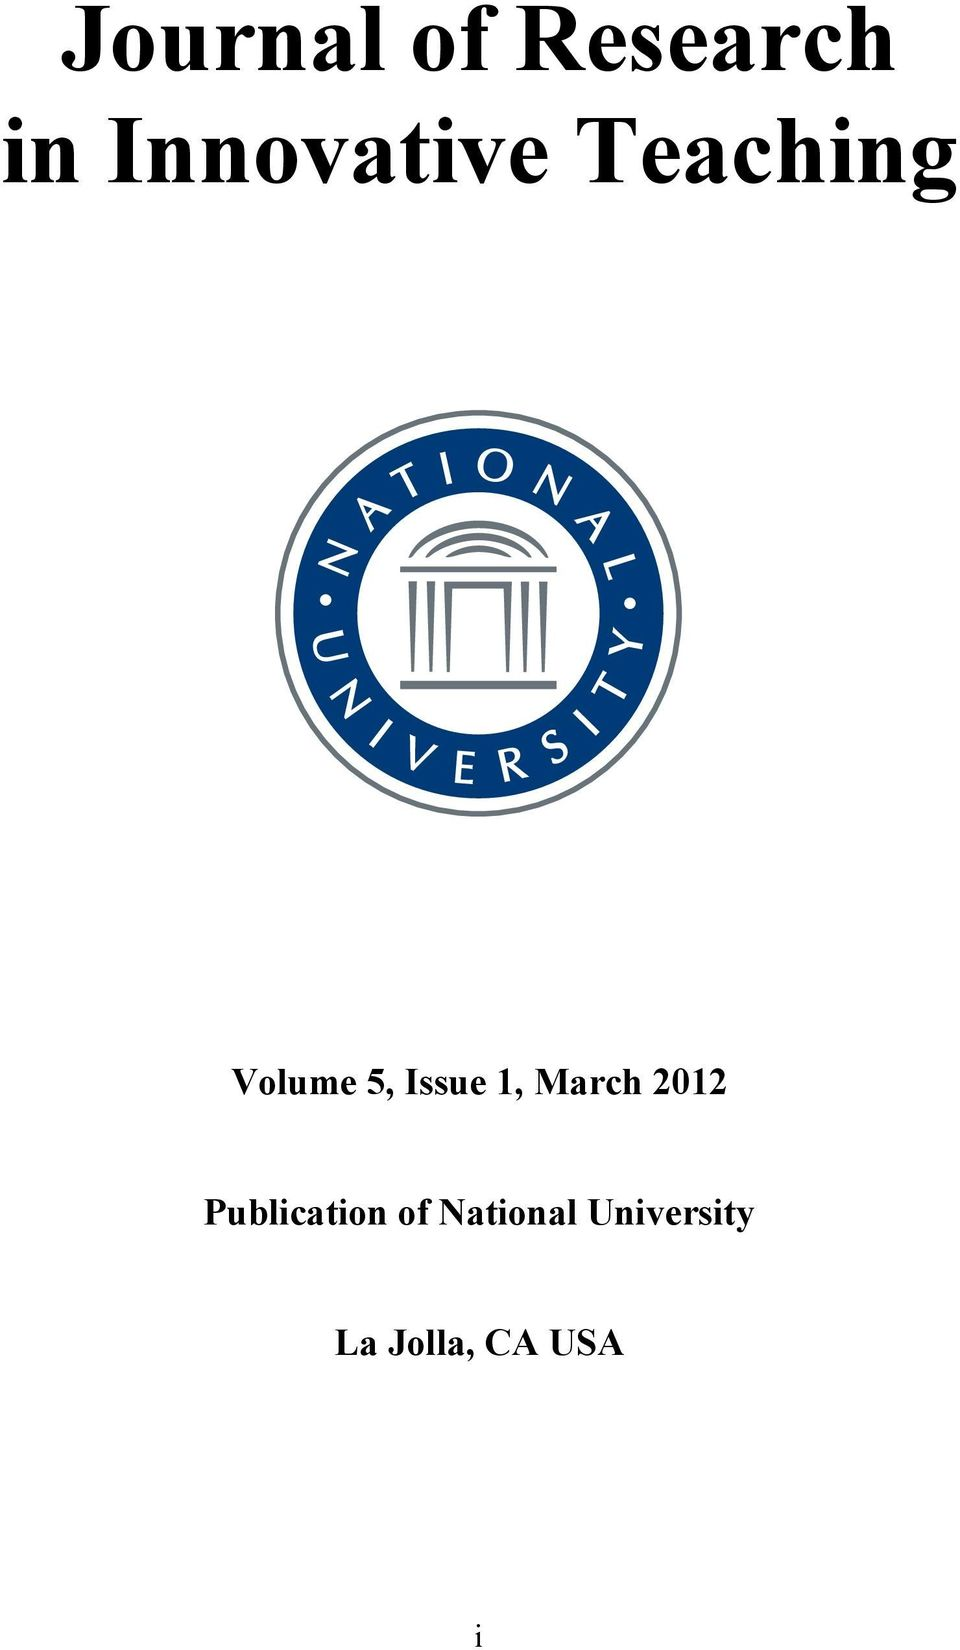 Issue 1, March 2012 Publication